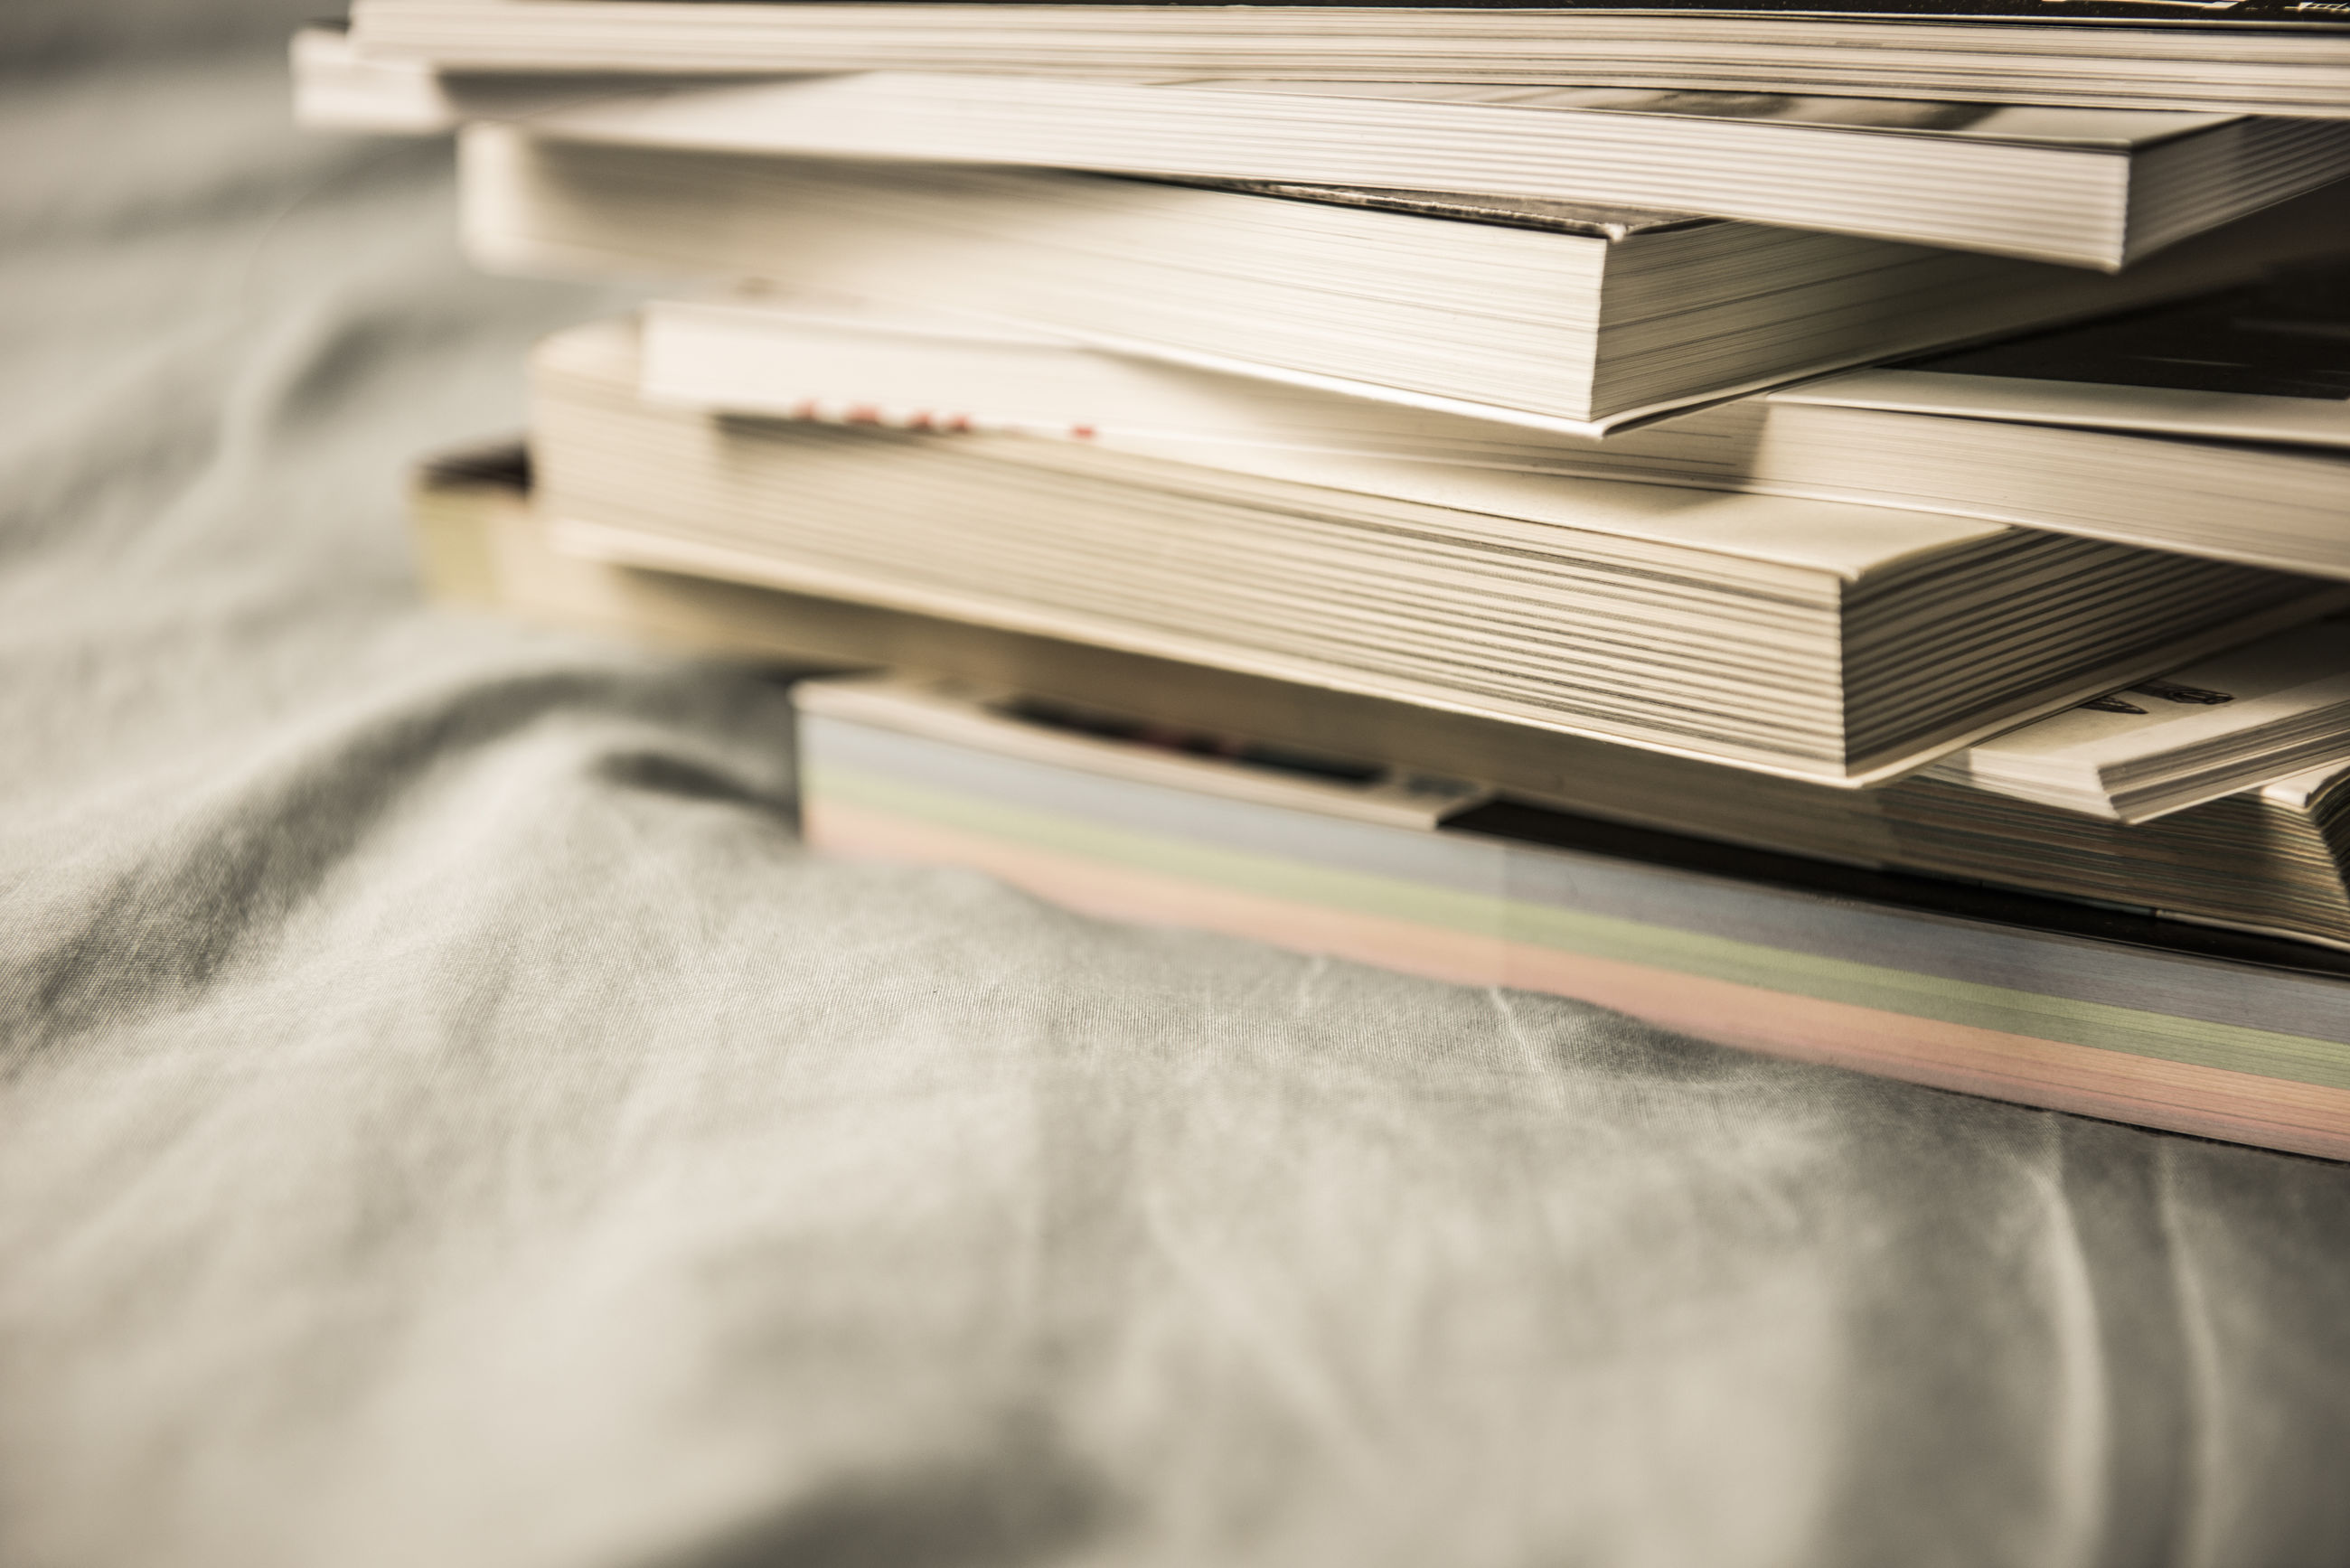 Stack of books on bed